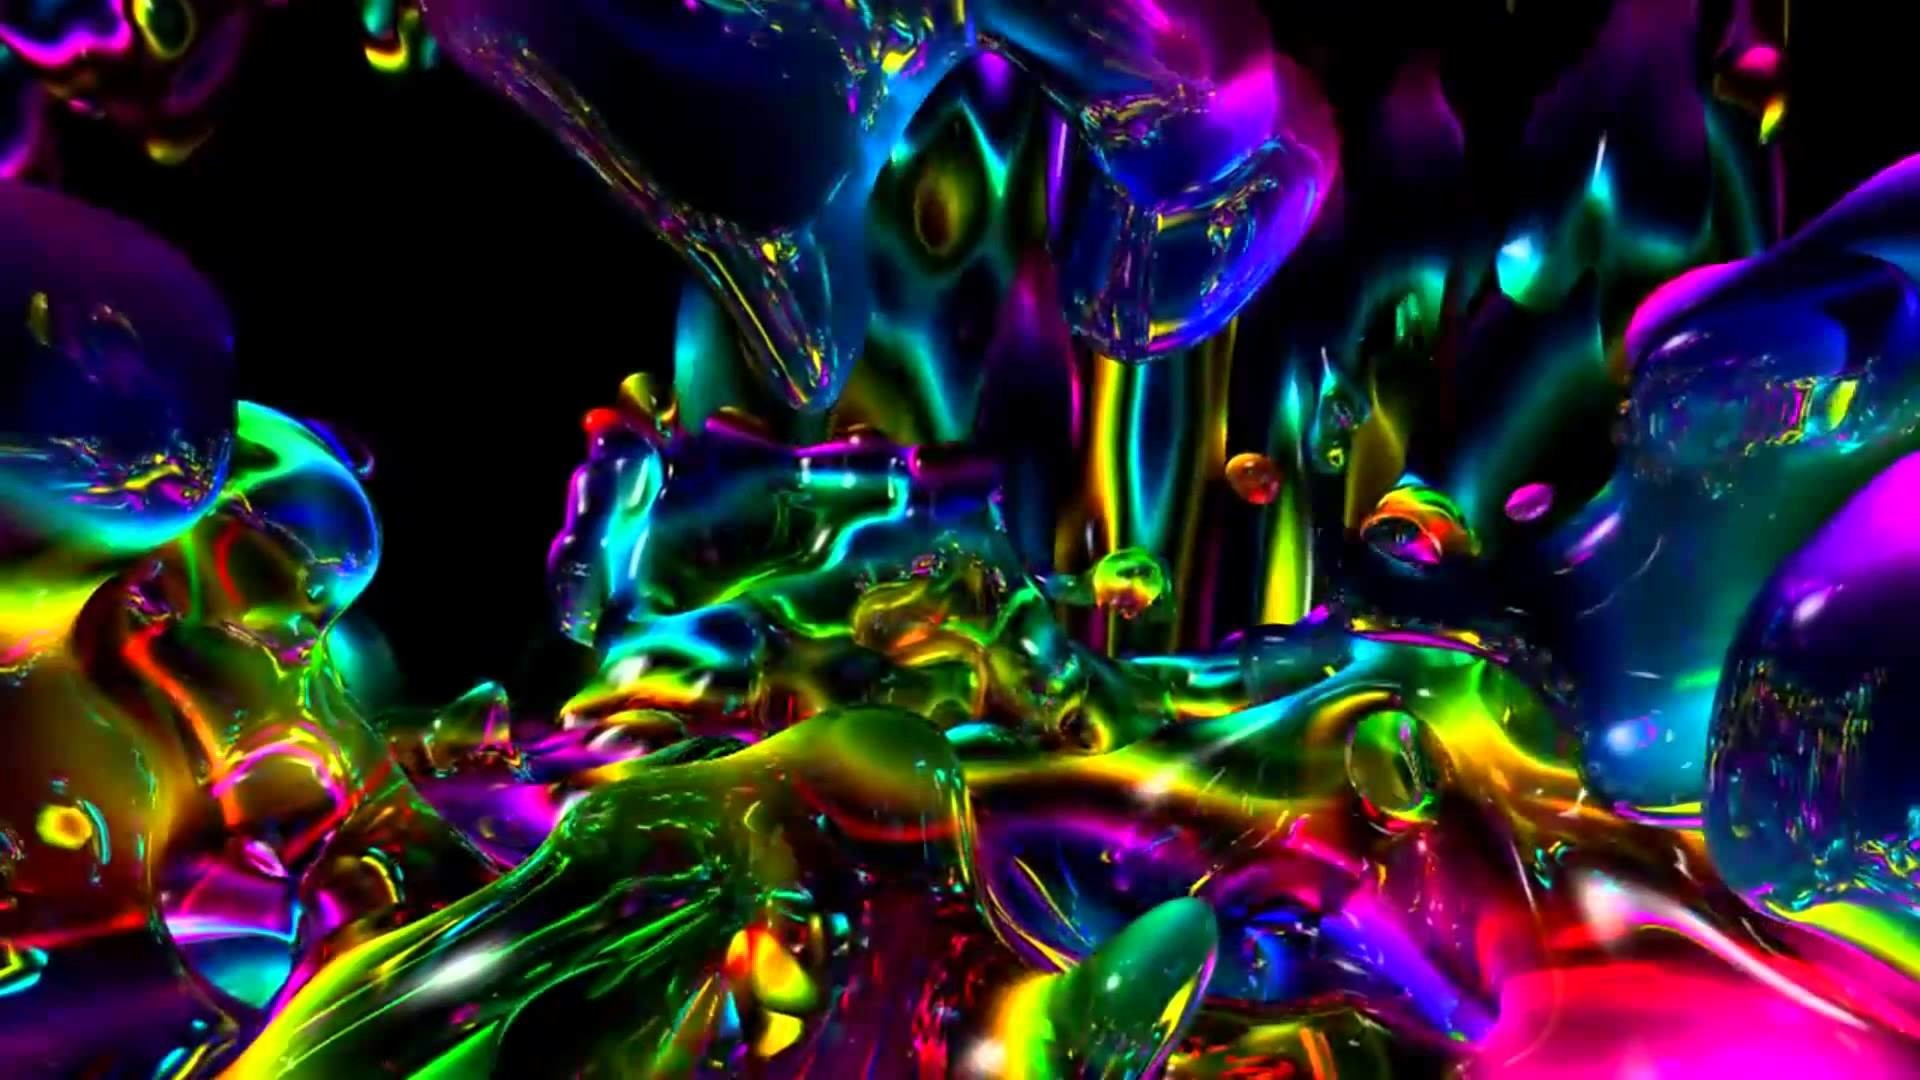 2560x1440 Wallpapers For Psychedelic Trippy Hd